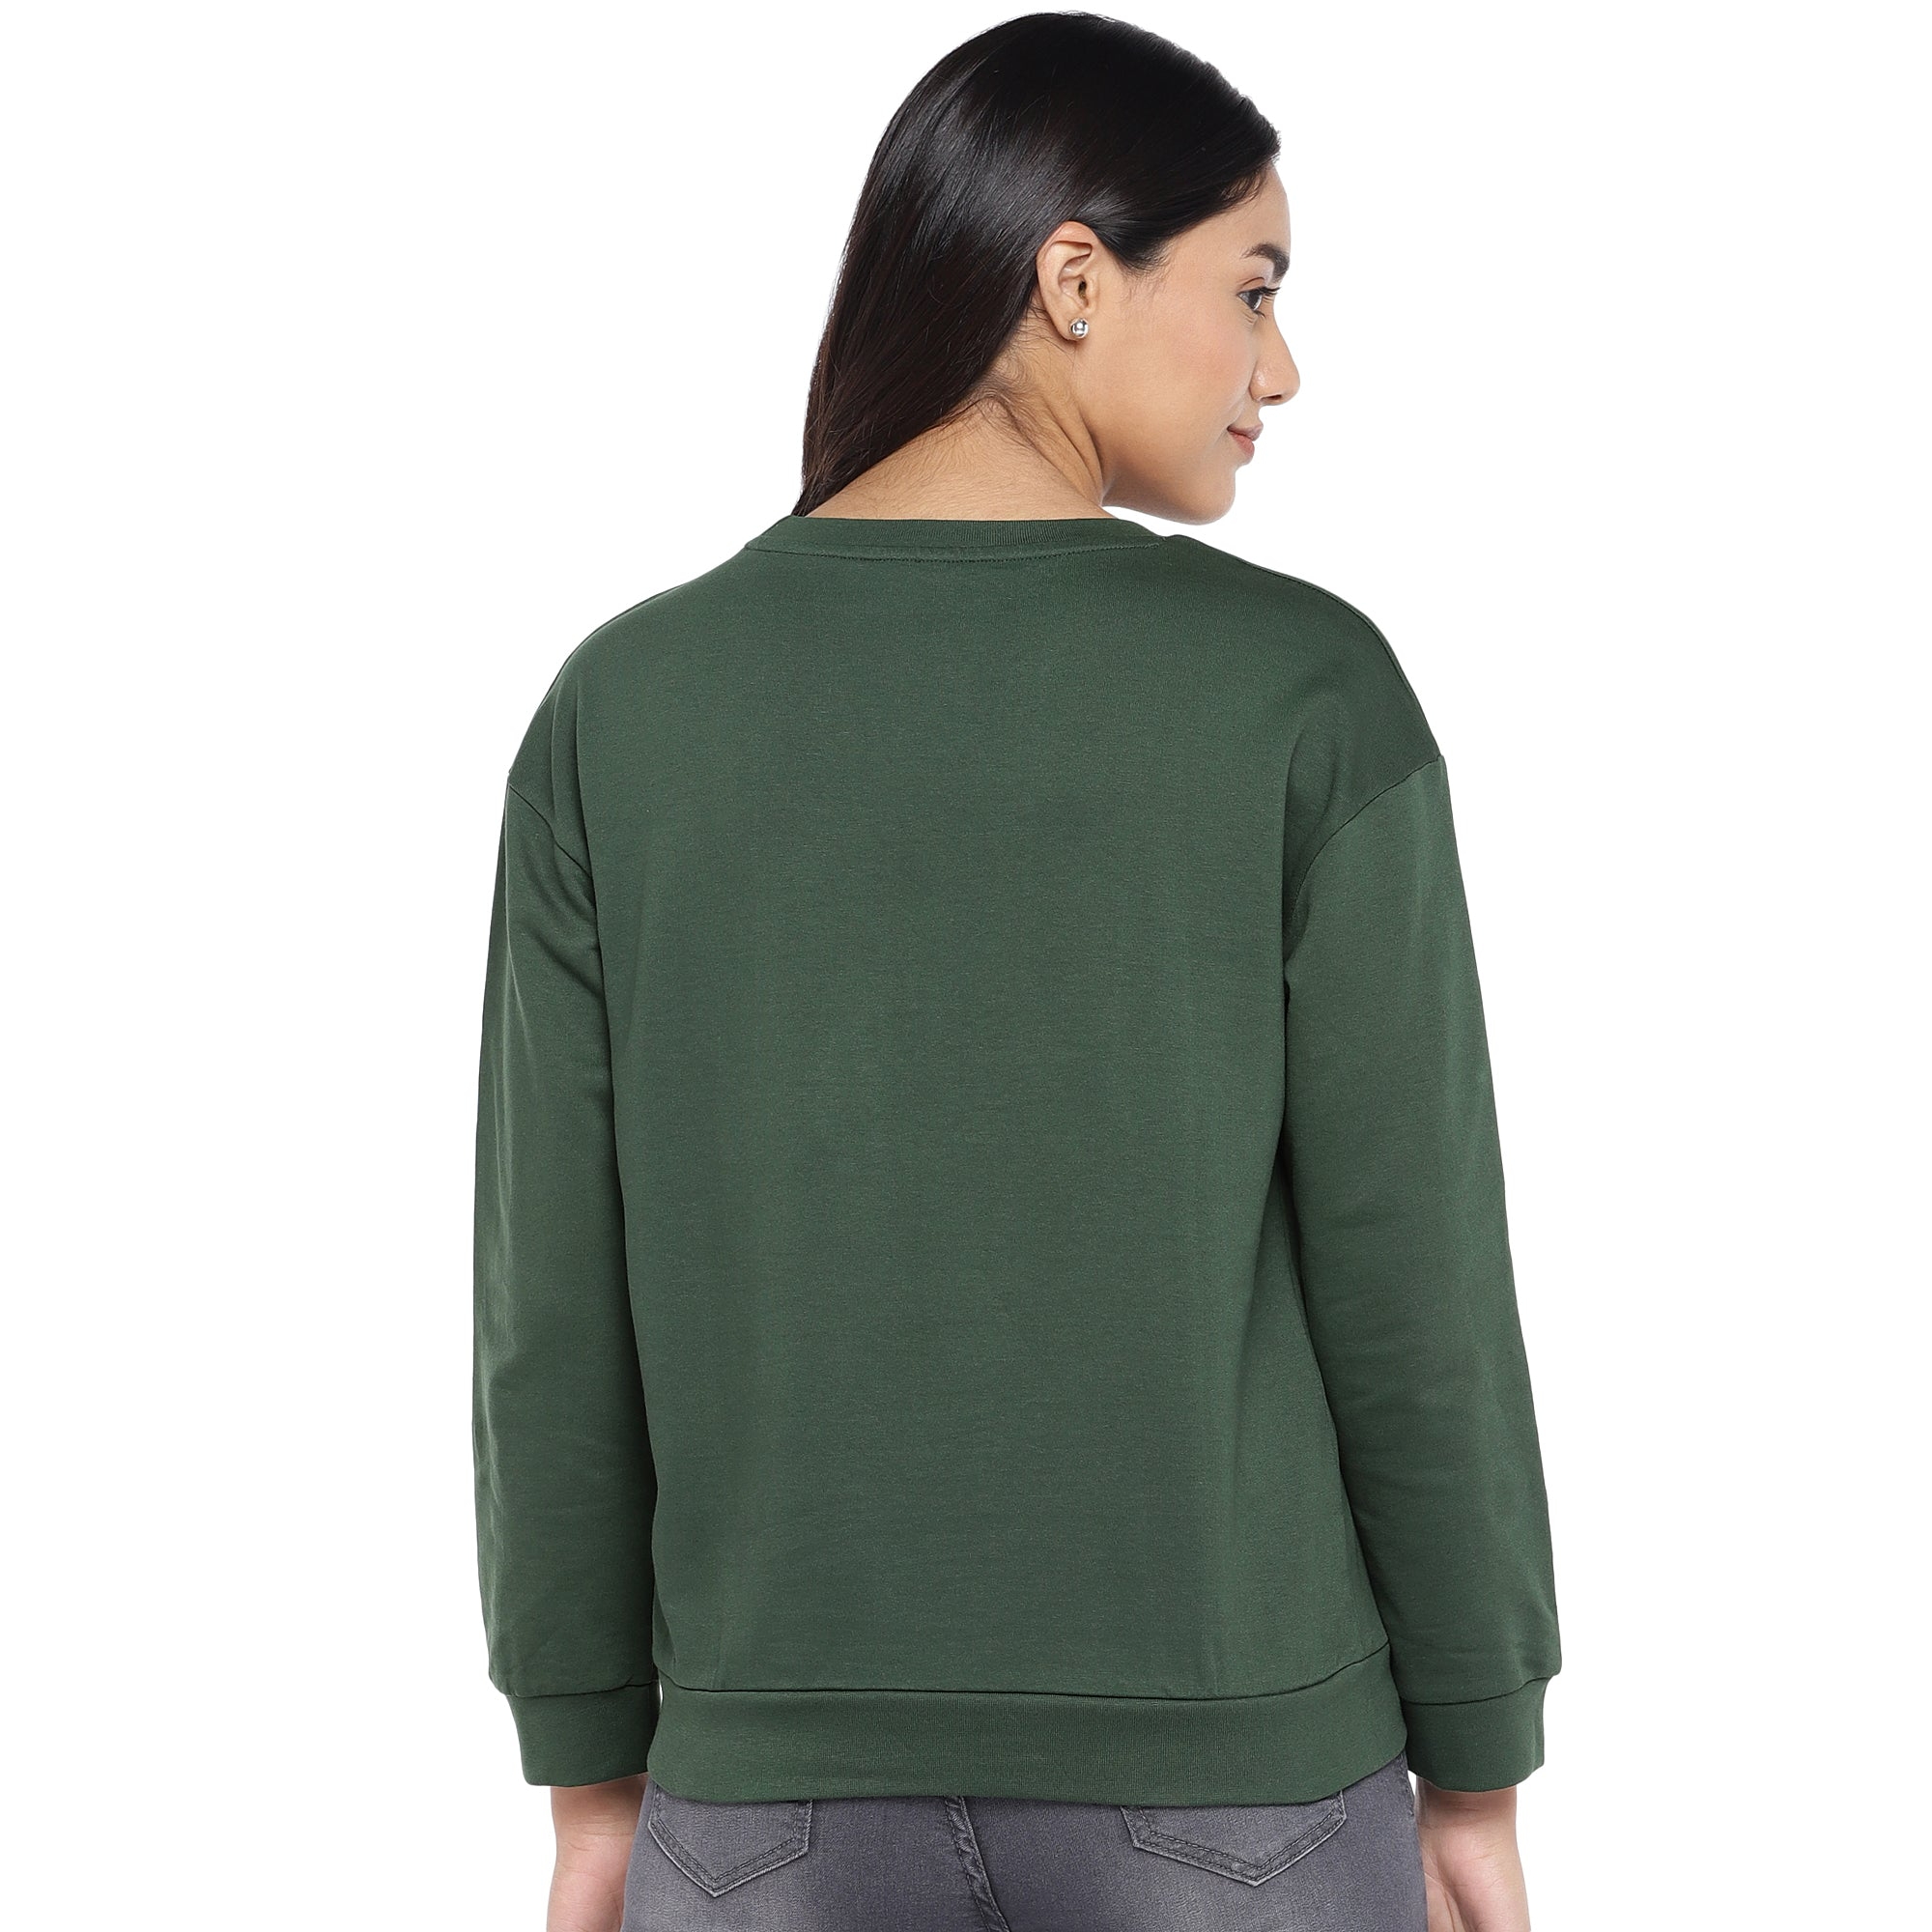 Olive Green & Black Printed Sweatshirt-3